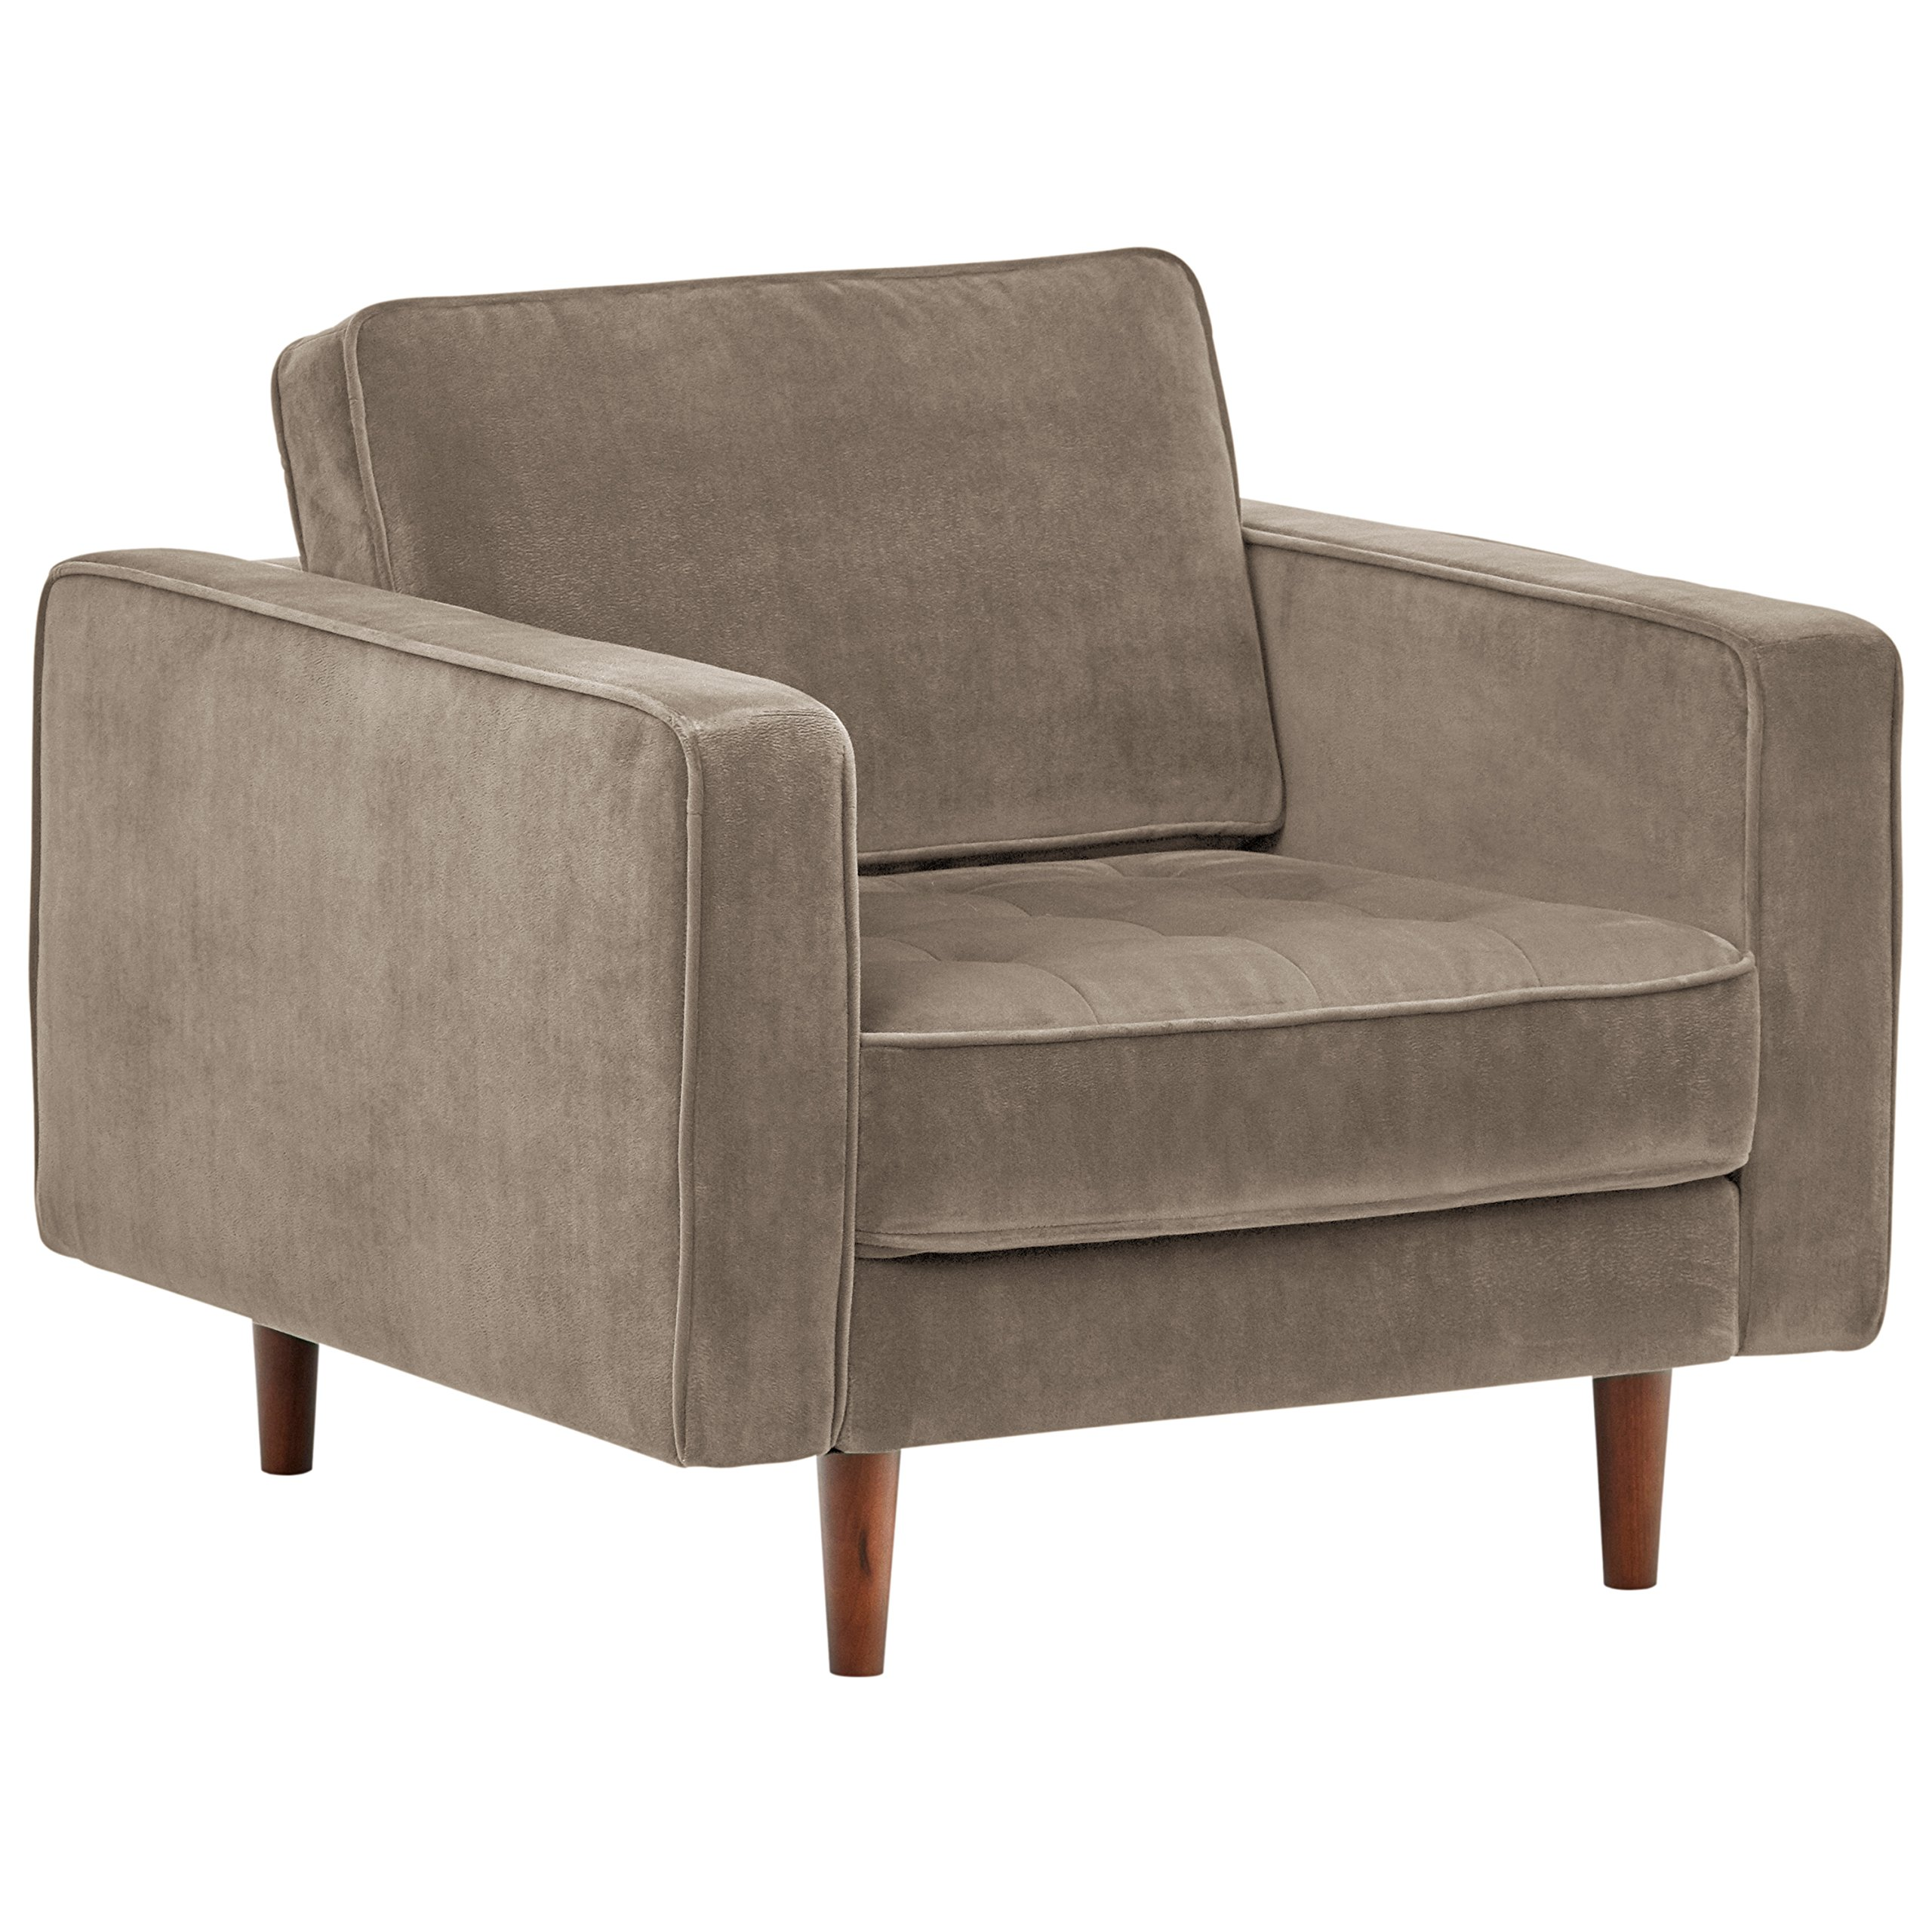 Rivet Aiden Tufted Mid-Century Modern Velvet Accent Chair, 35.4''W, Otter Grey by Rivet